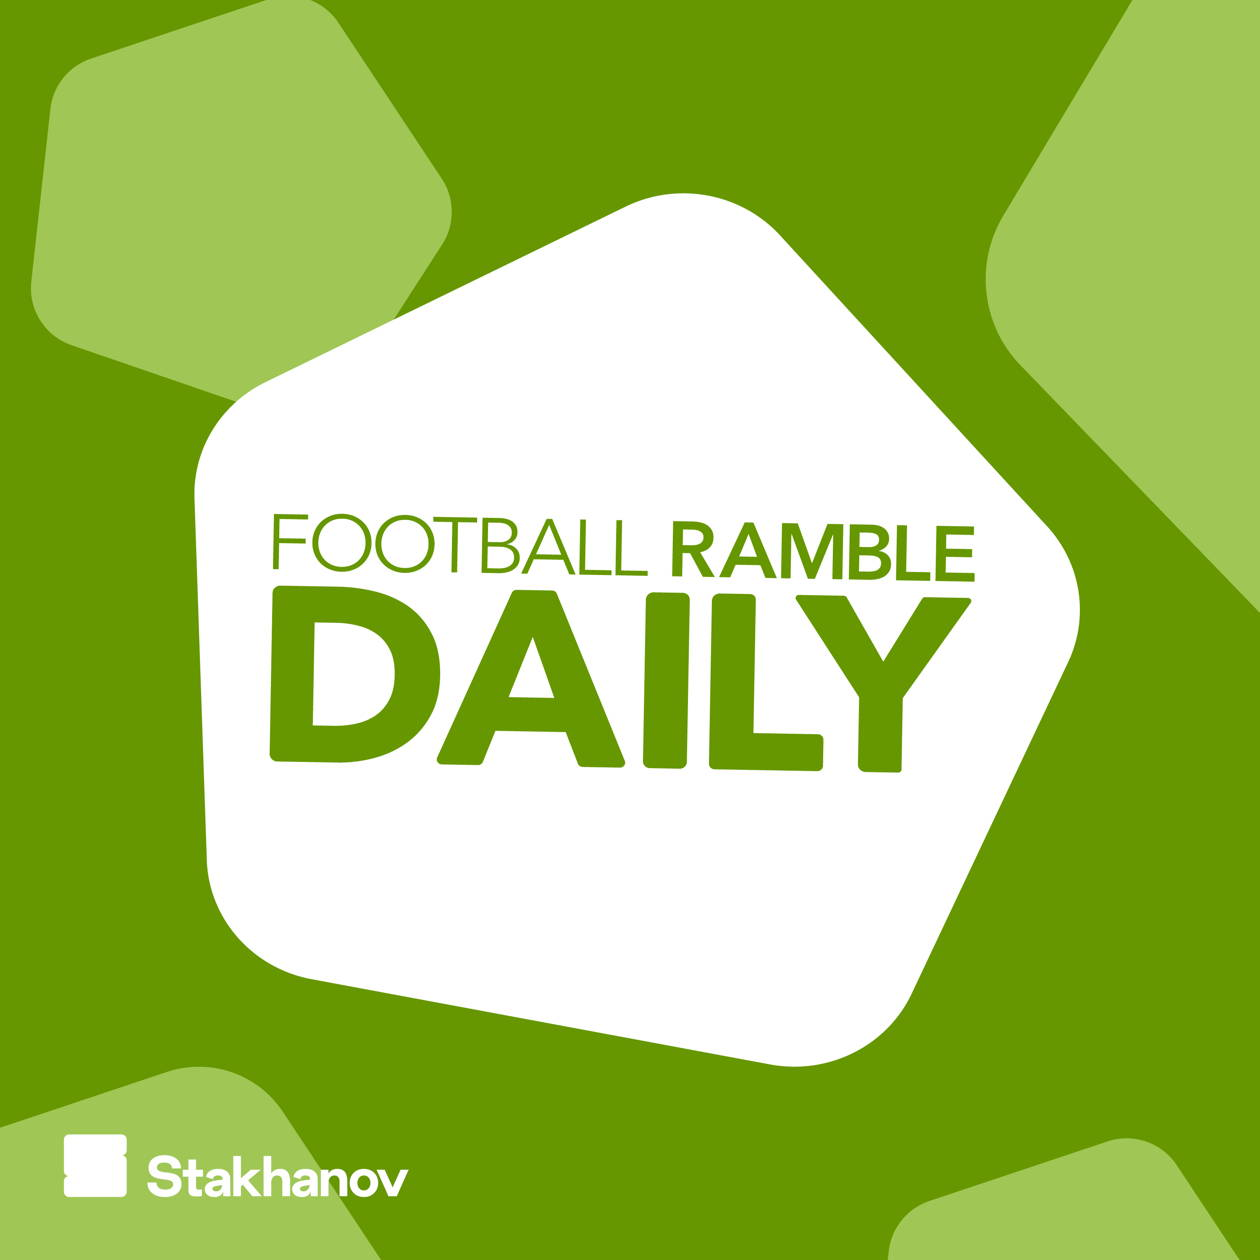 Artwork for the Football Ramble Daily podcast.